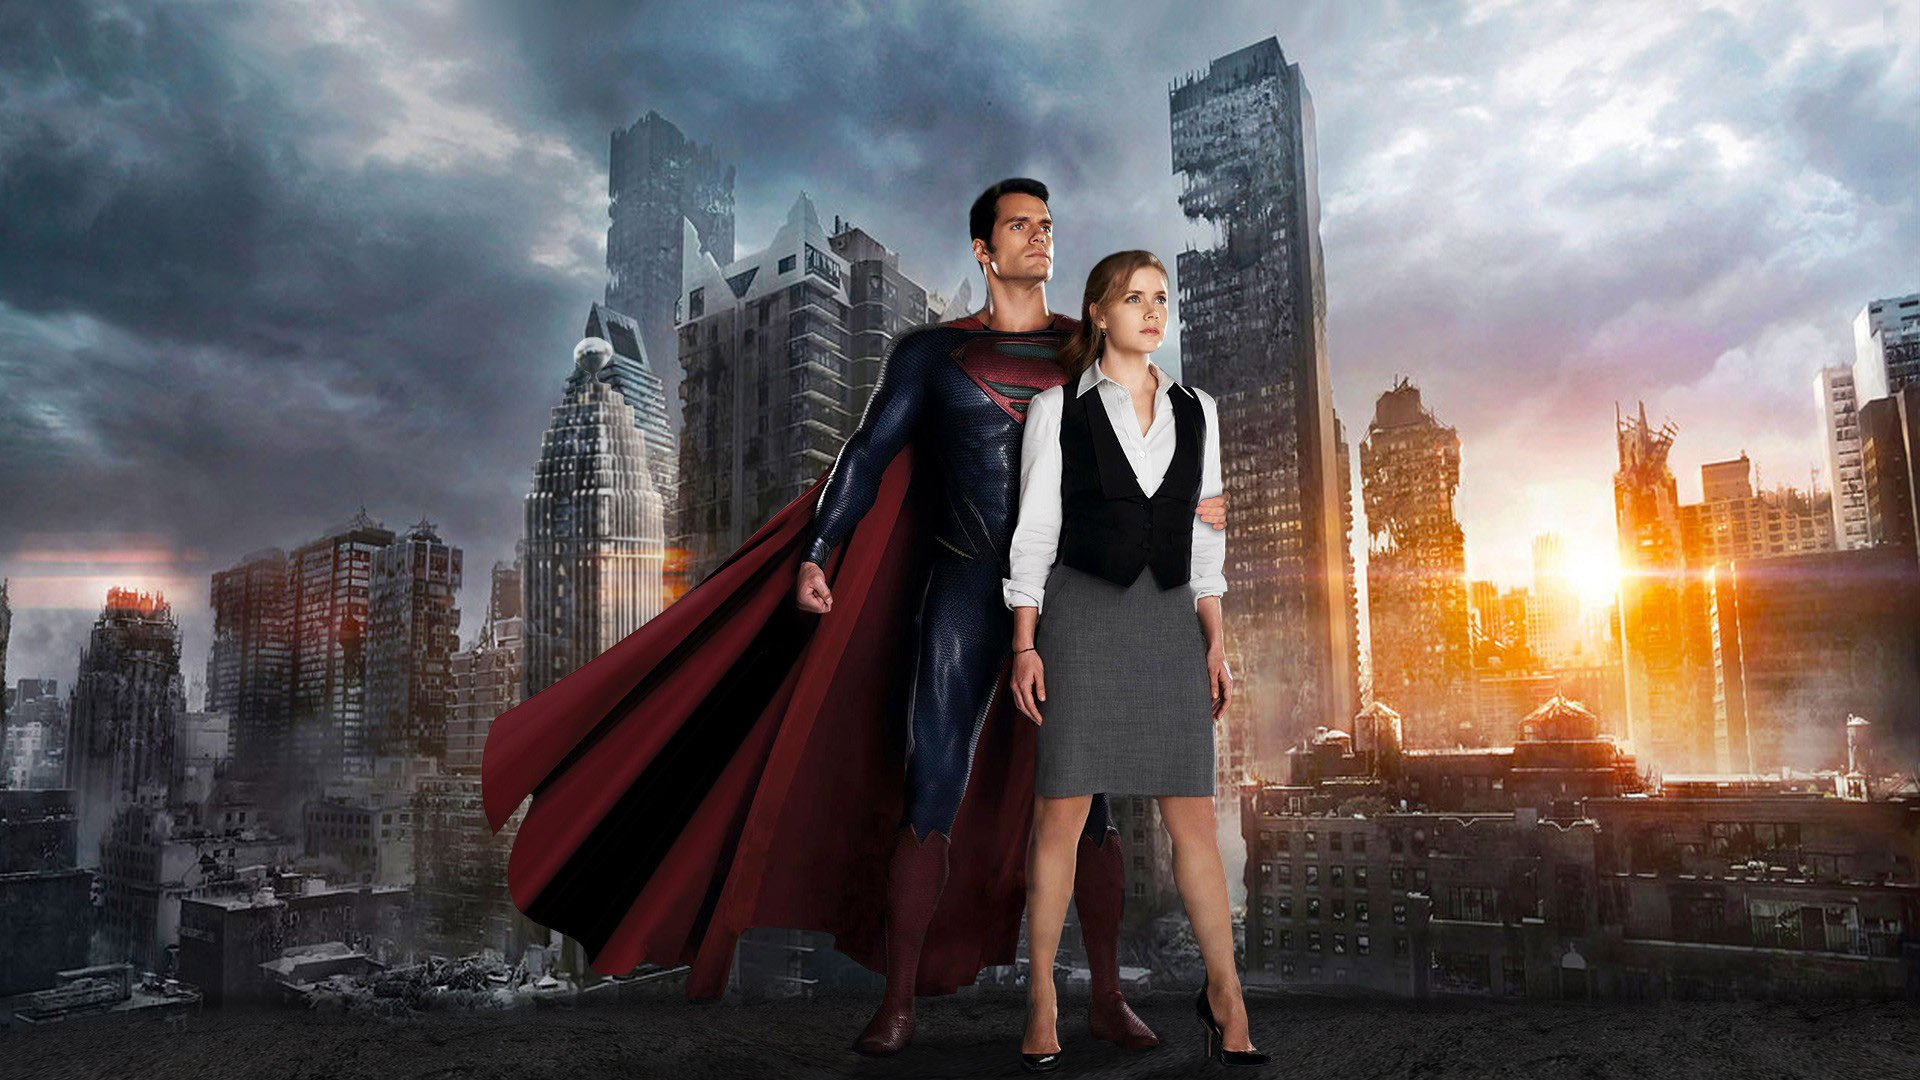 Share who is the new superman dating sorry